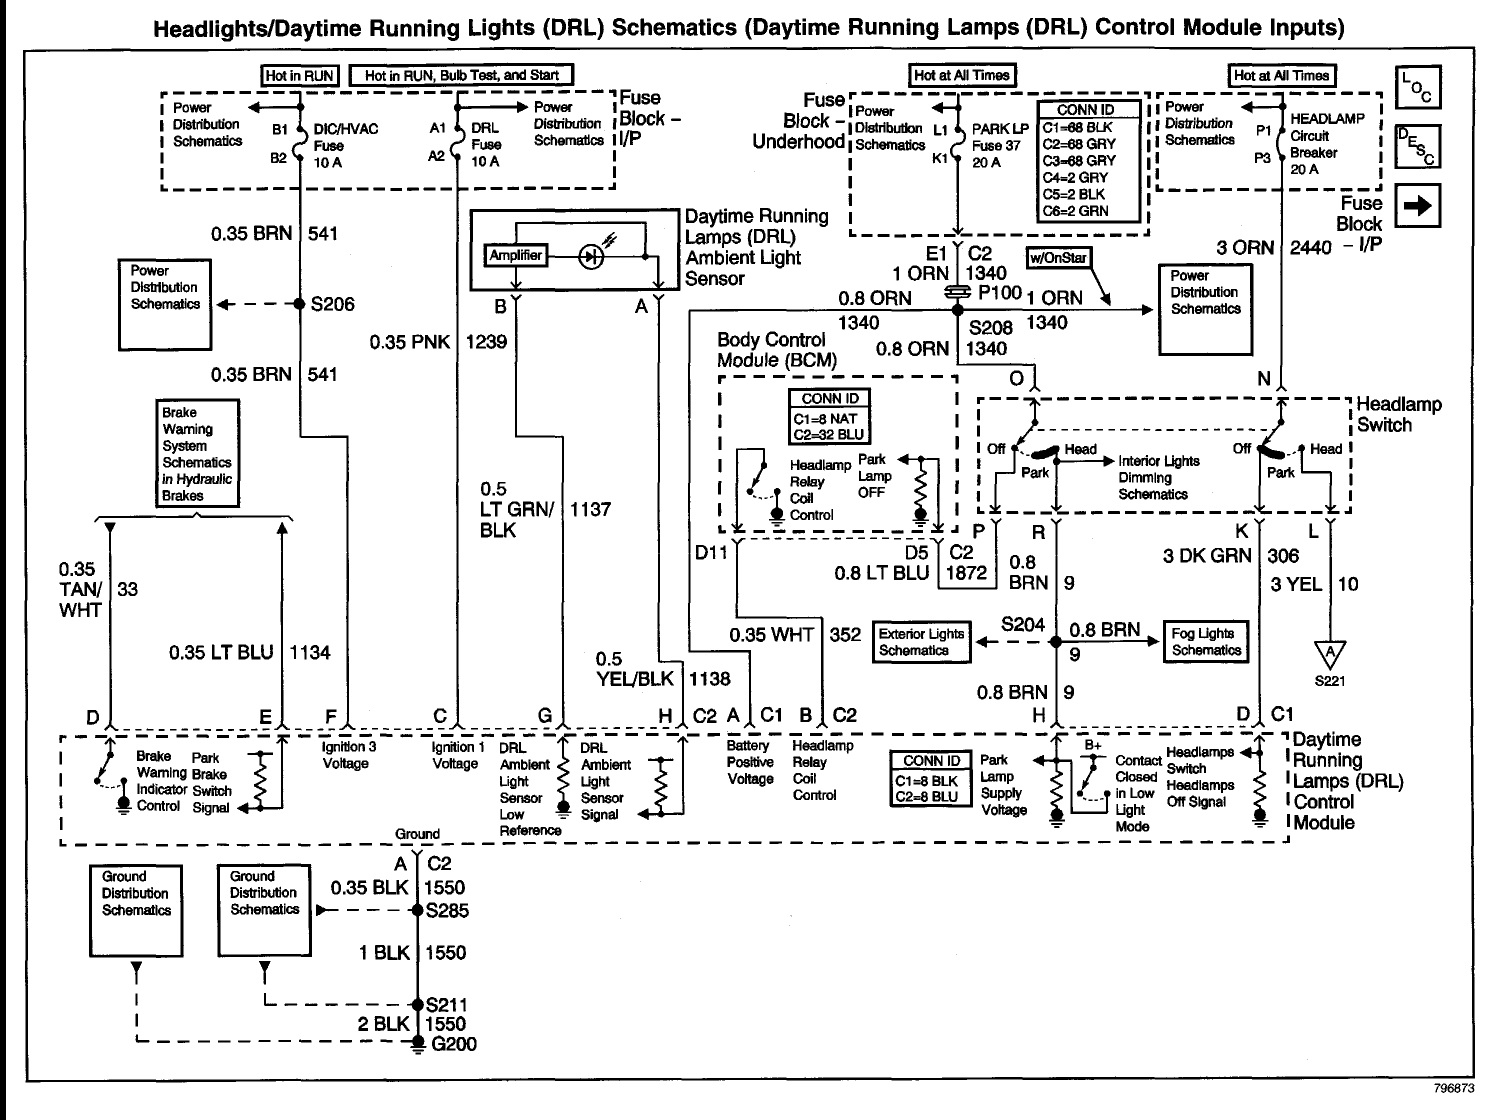 diagram] 1997 pontiac grand prix wiring diagrams full version hd quality wiring  diagrams - coindiagram.zanzibarbeach.it  diagram database